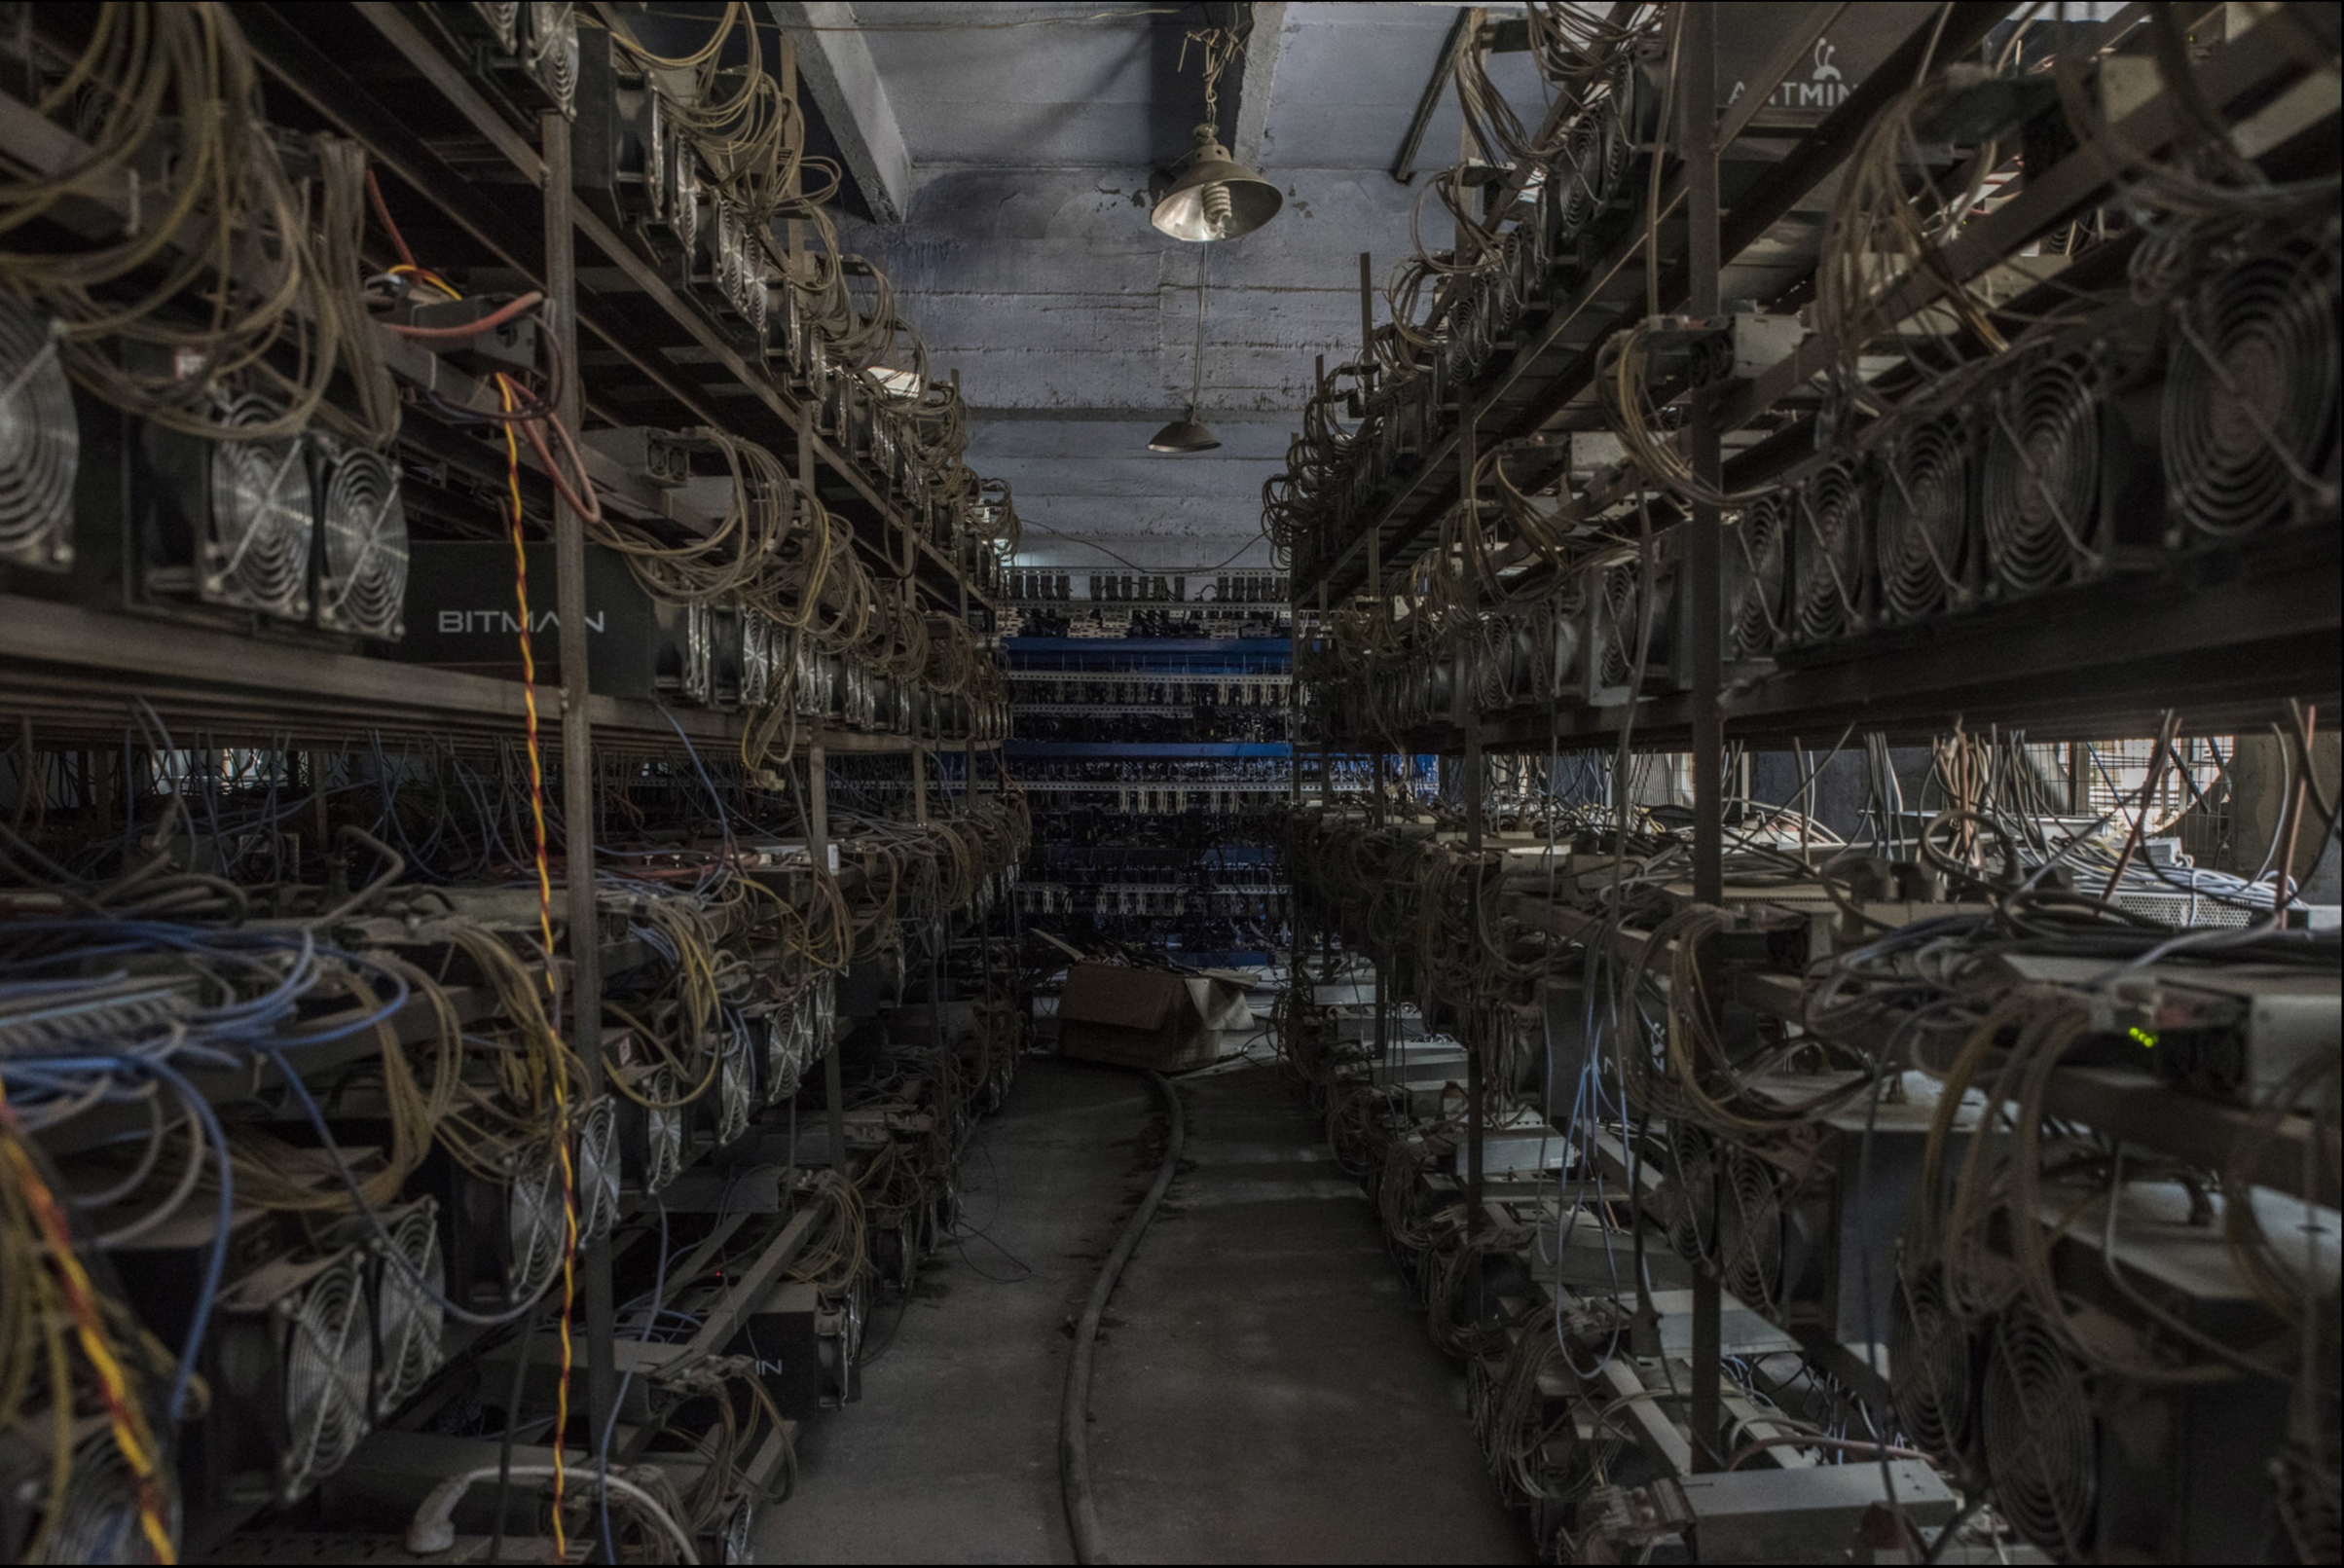 FireShot Capture 9 - Mining for Bitcoin in China - The gate_ - http___www.nytimes.com_slideshow_20